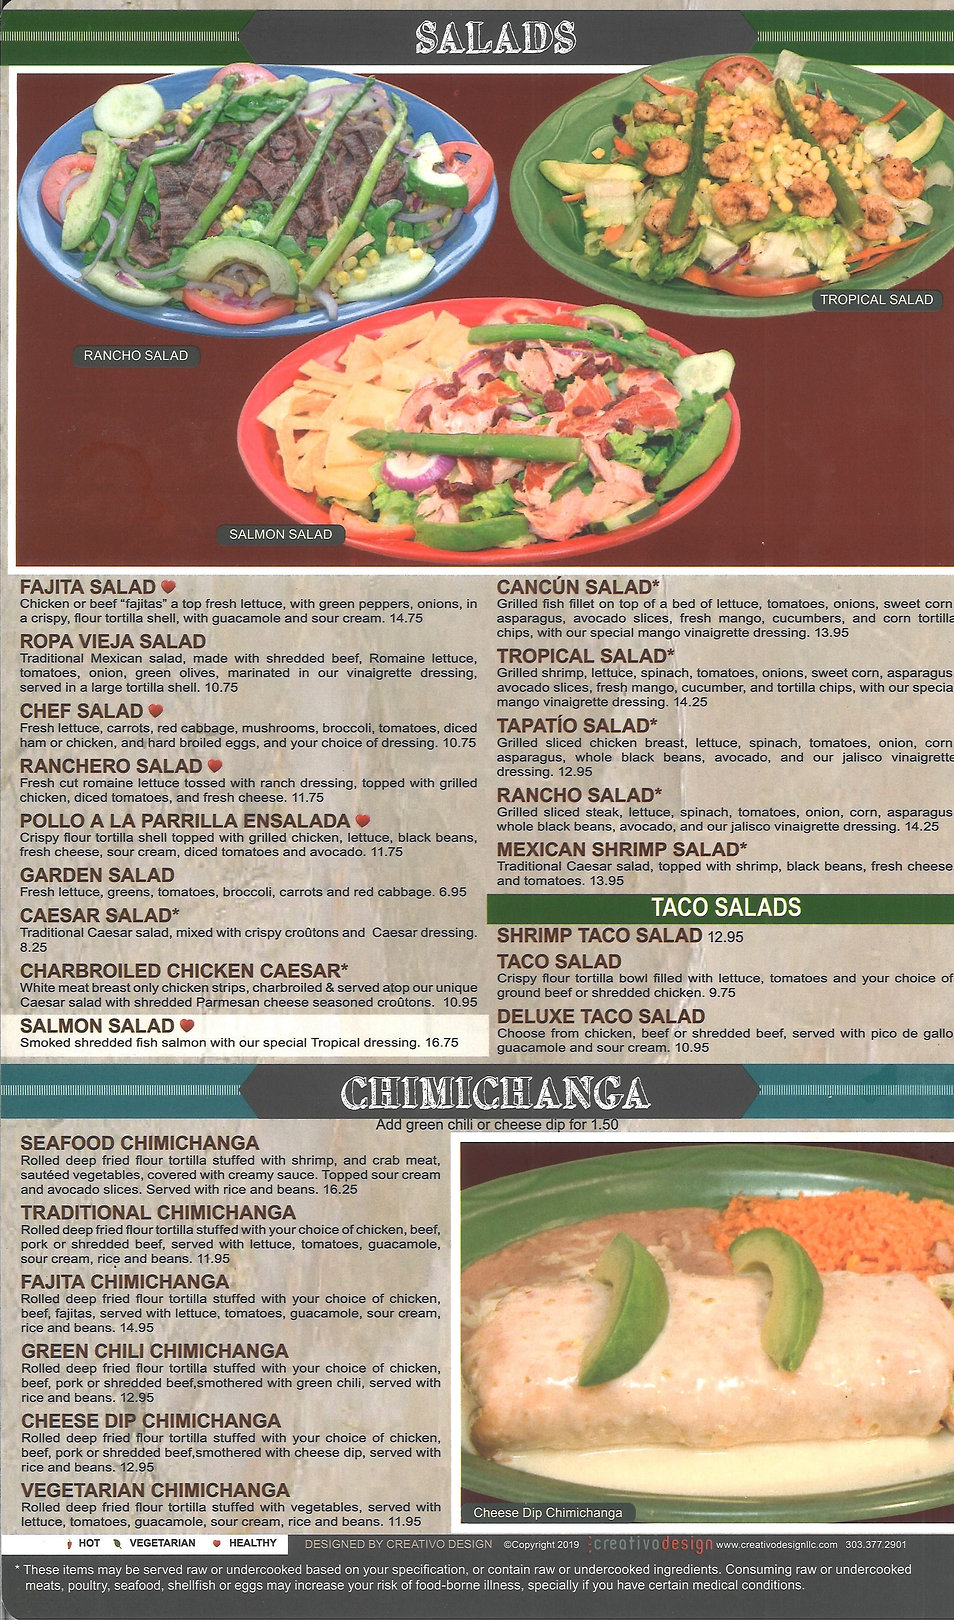 Hacienda Real Menu/Salad